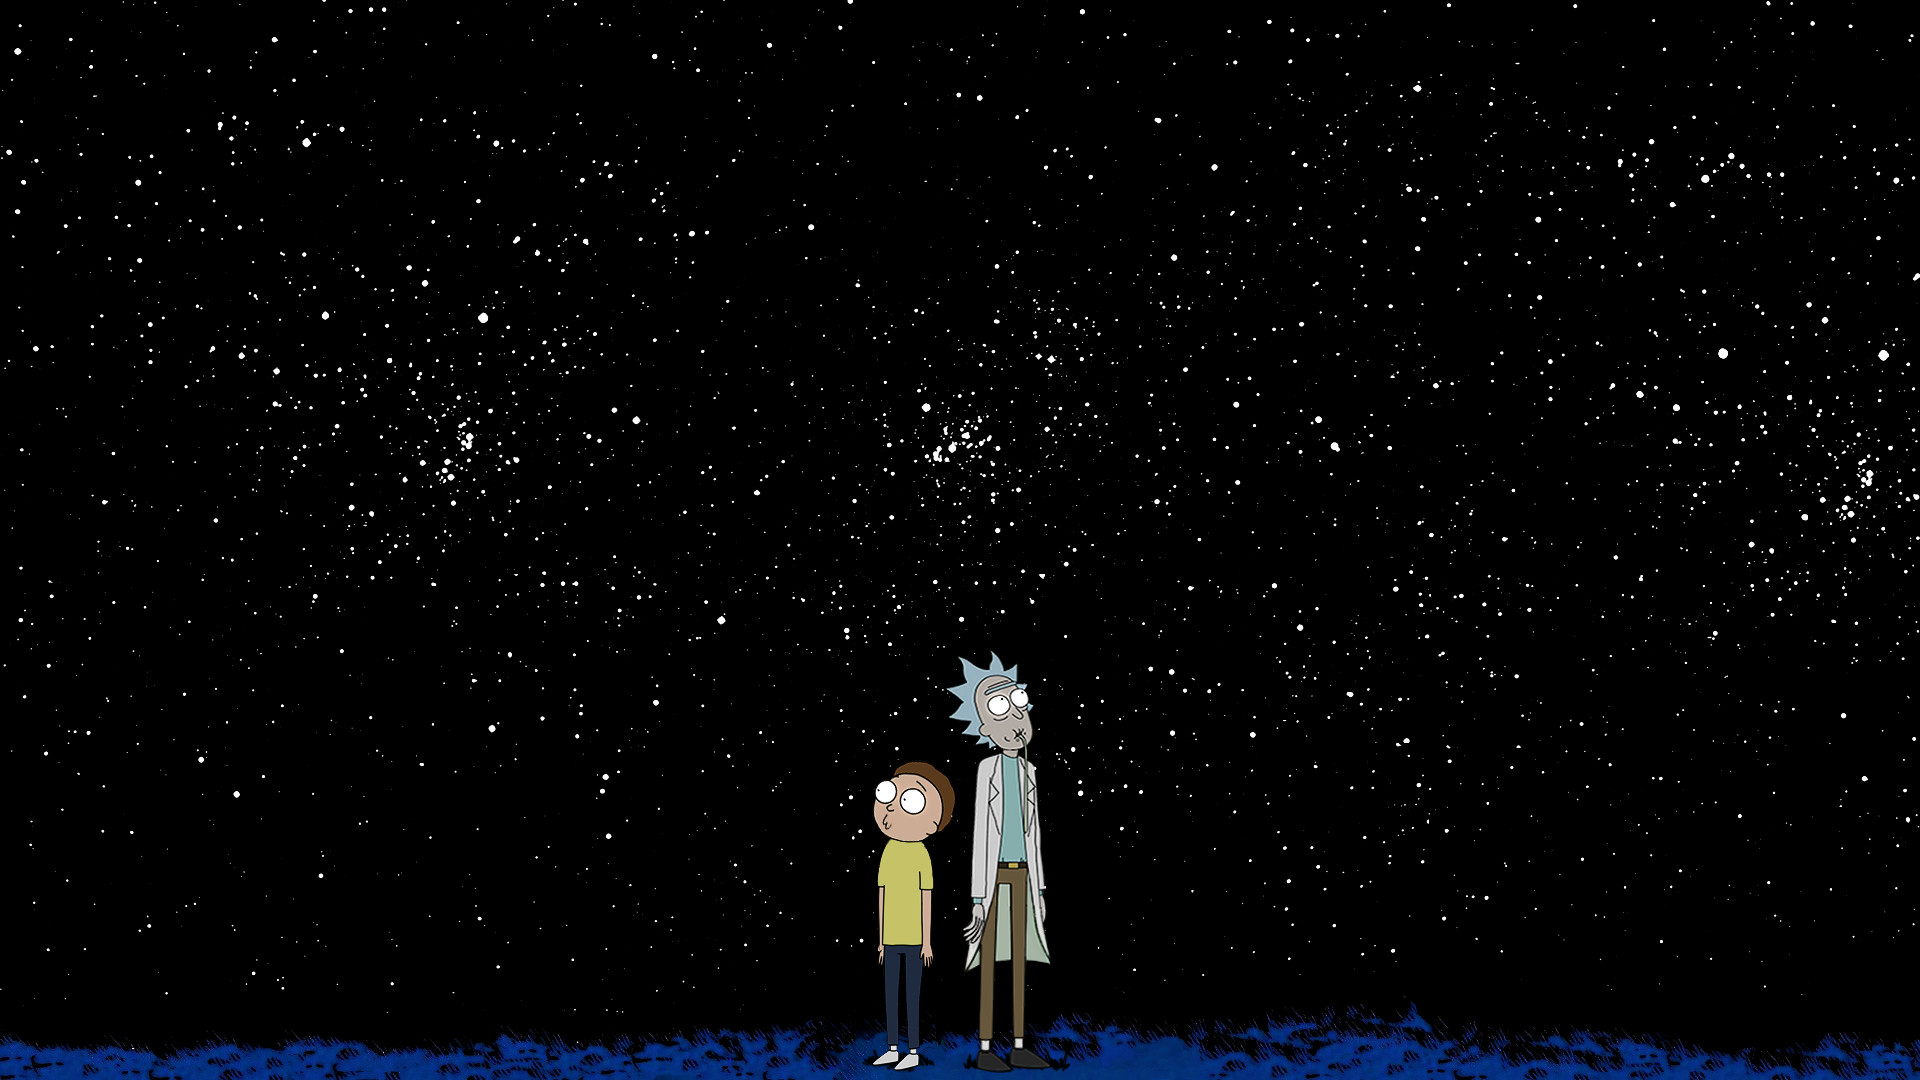 Rick And Morty Wallpapers High Quality Download Free 1920×1080 Rick and  Morty Wallpapers (25 Wallpapers) | Adorable Wallpapers | ciencia ficción |  Pinterest